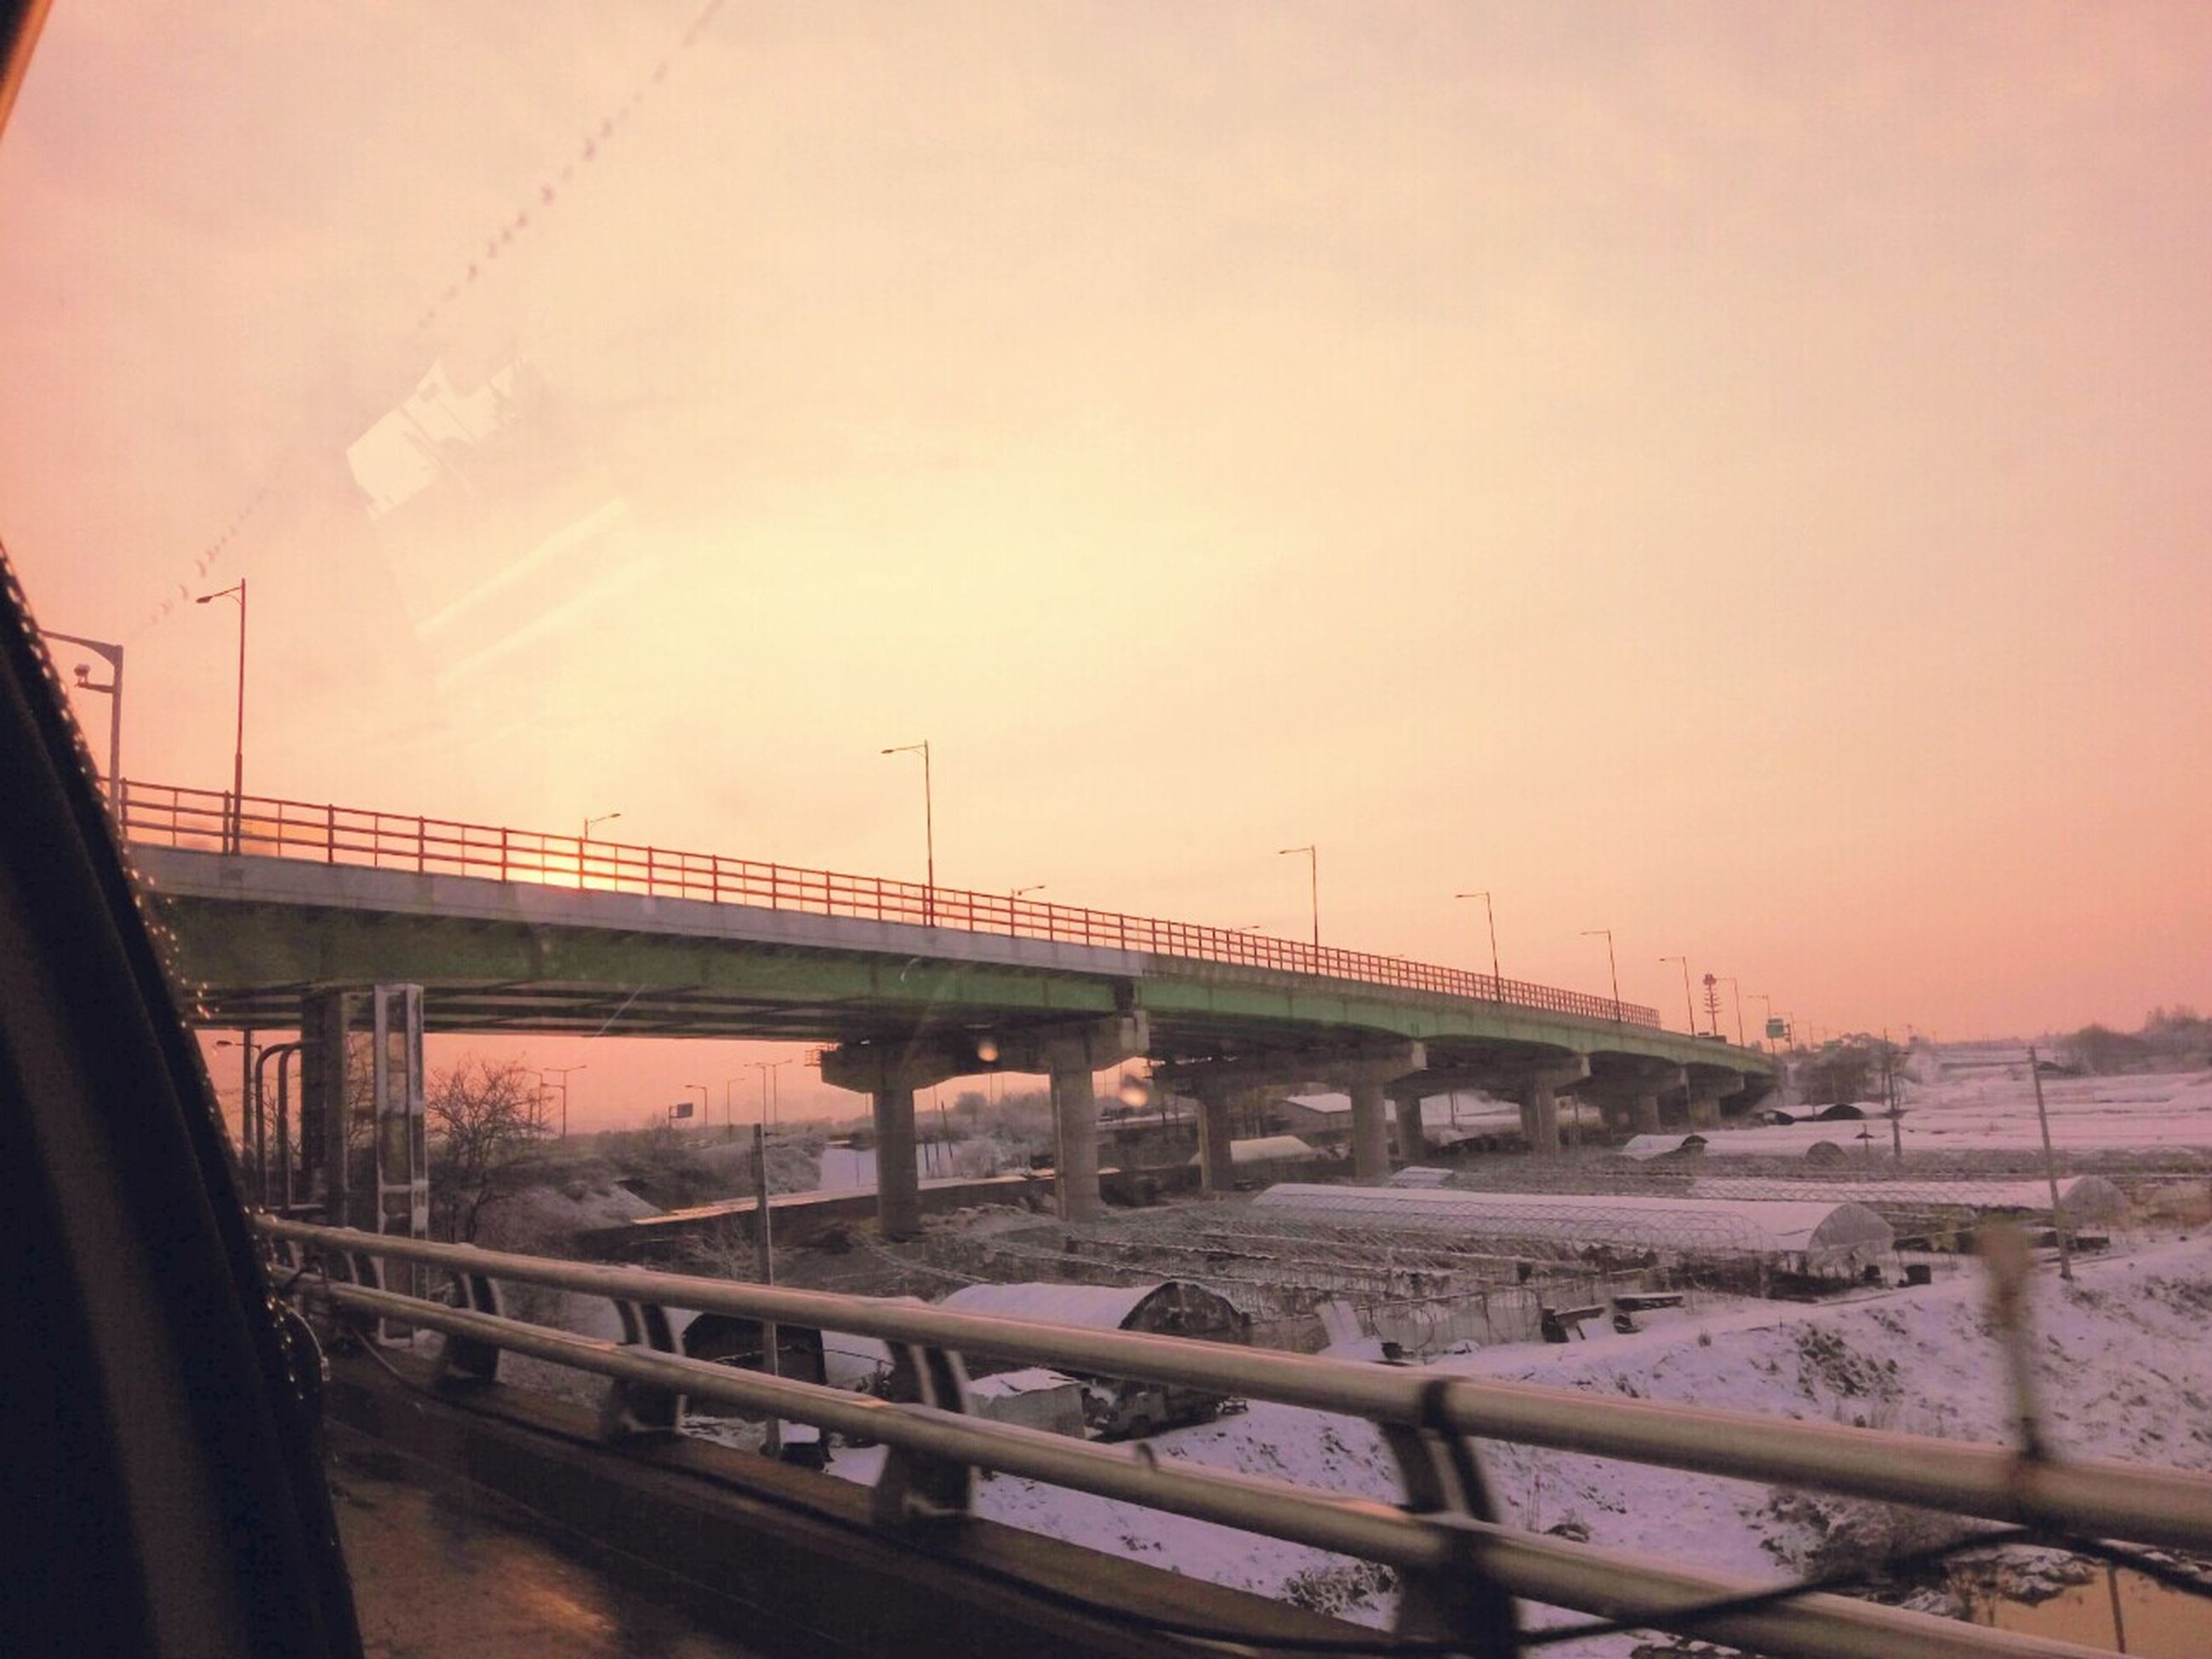 connection, bridge - man made structure, sunset, transportation, railing, built structure, water, architecture, bridge, sky, clear sky, sun, sea, river, orange color, nature, engineering, outdoors, mode of transport, sunlight